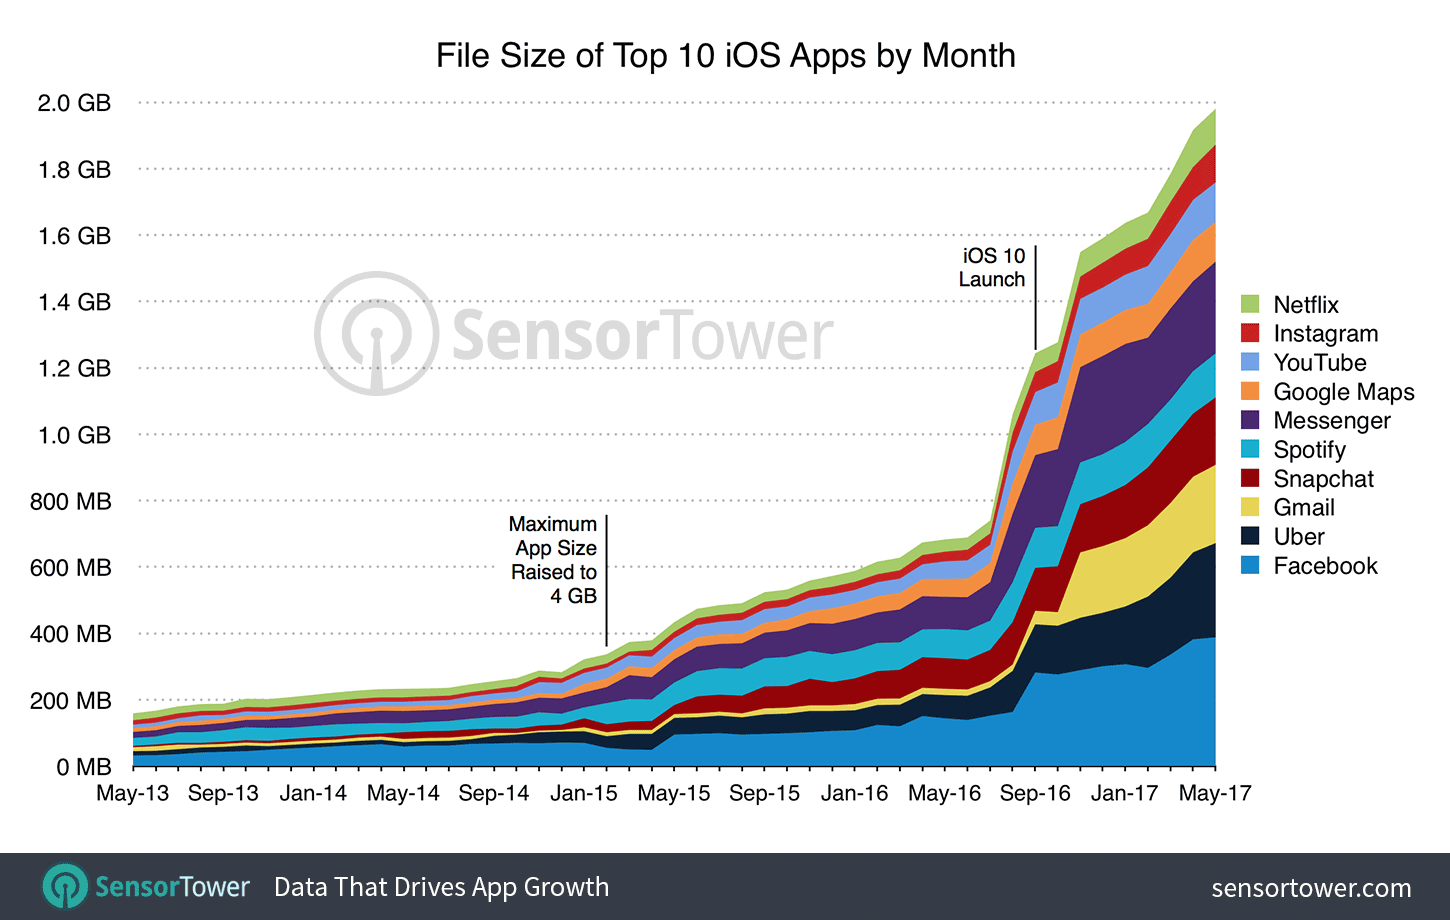 Top 10 Ios Apps Size By Month